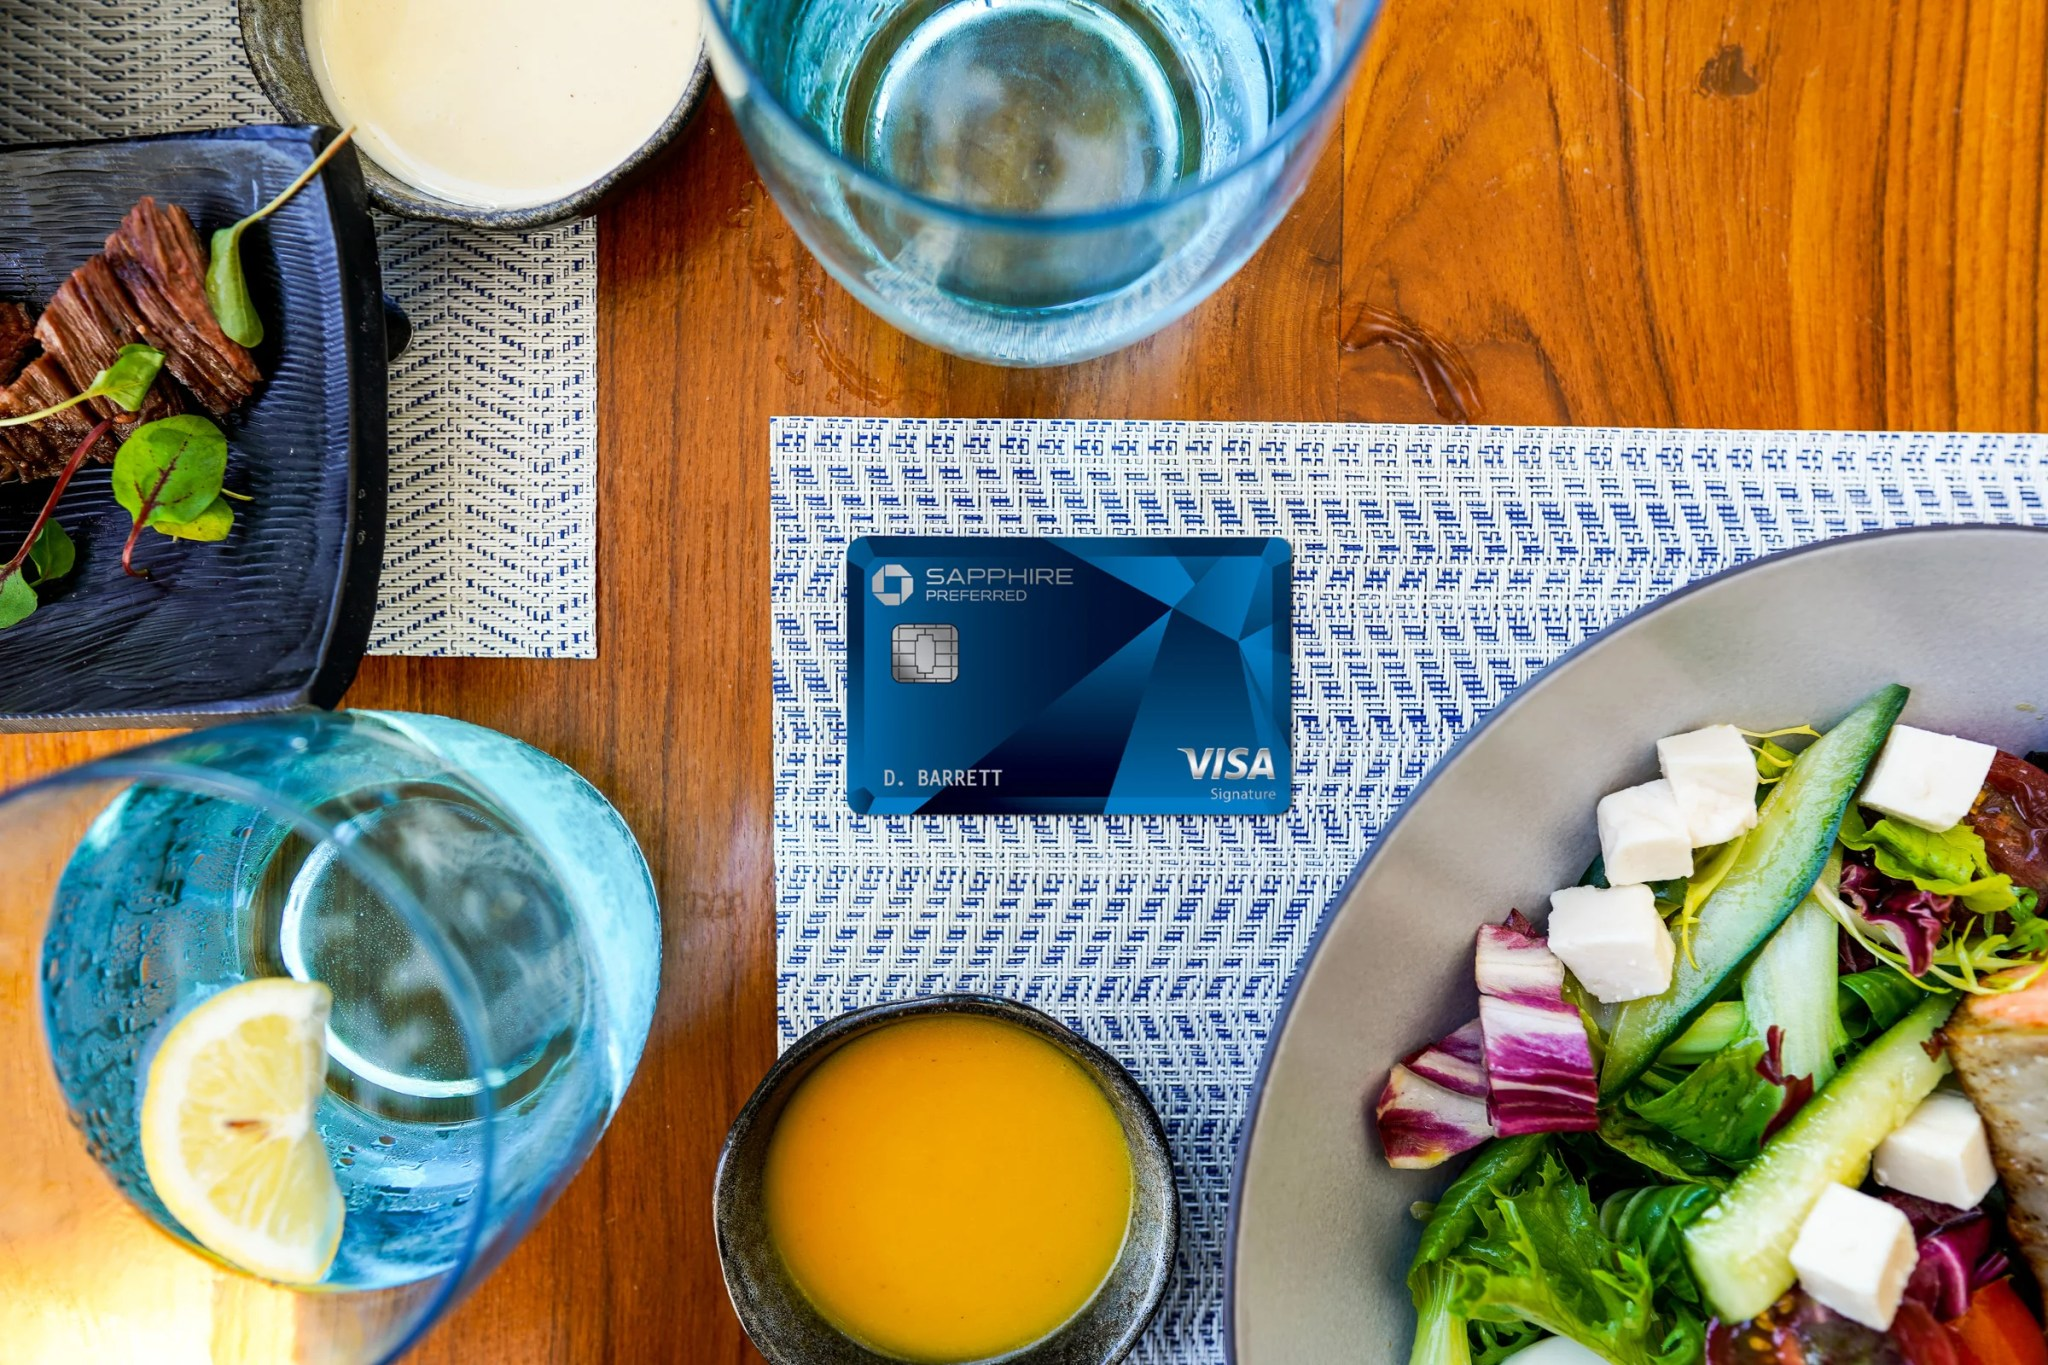 7 Credit Cards That Offer Fantastic Value - The Points Guy